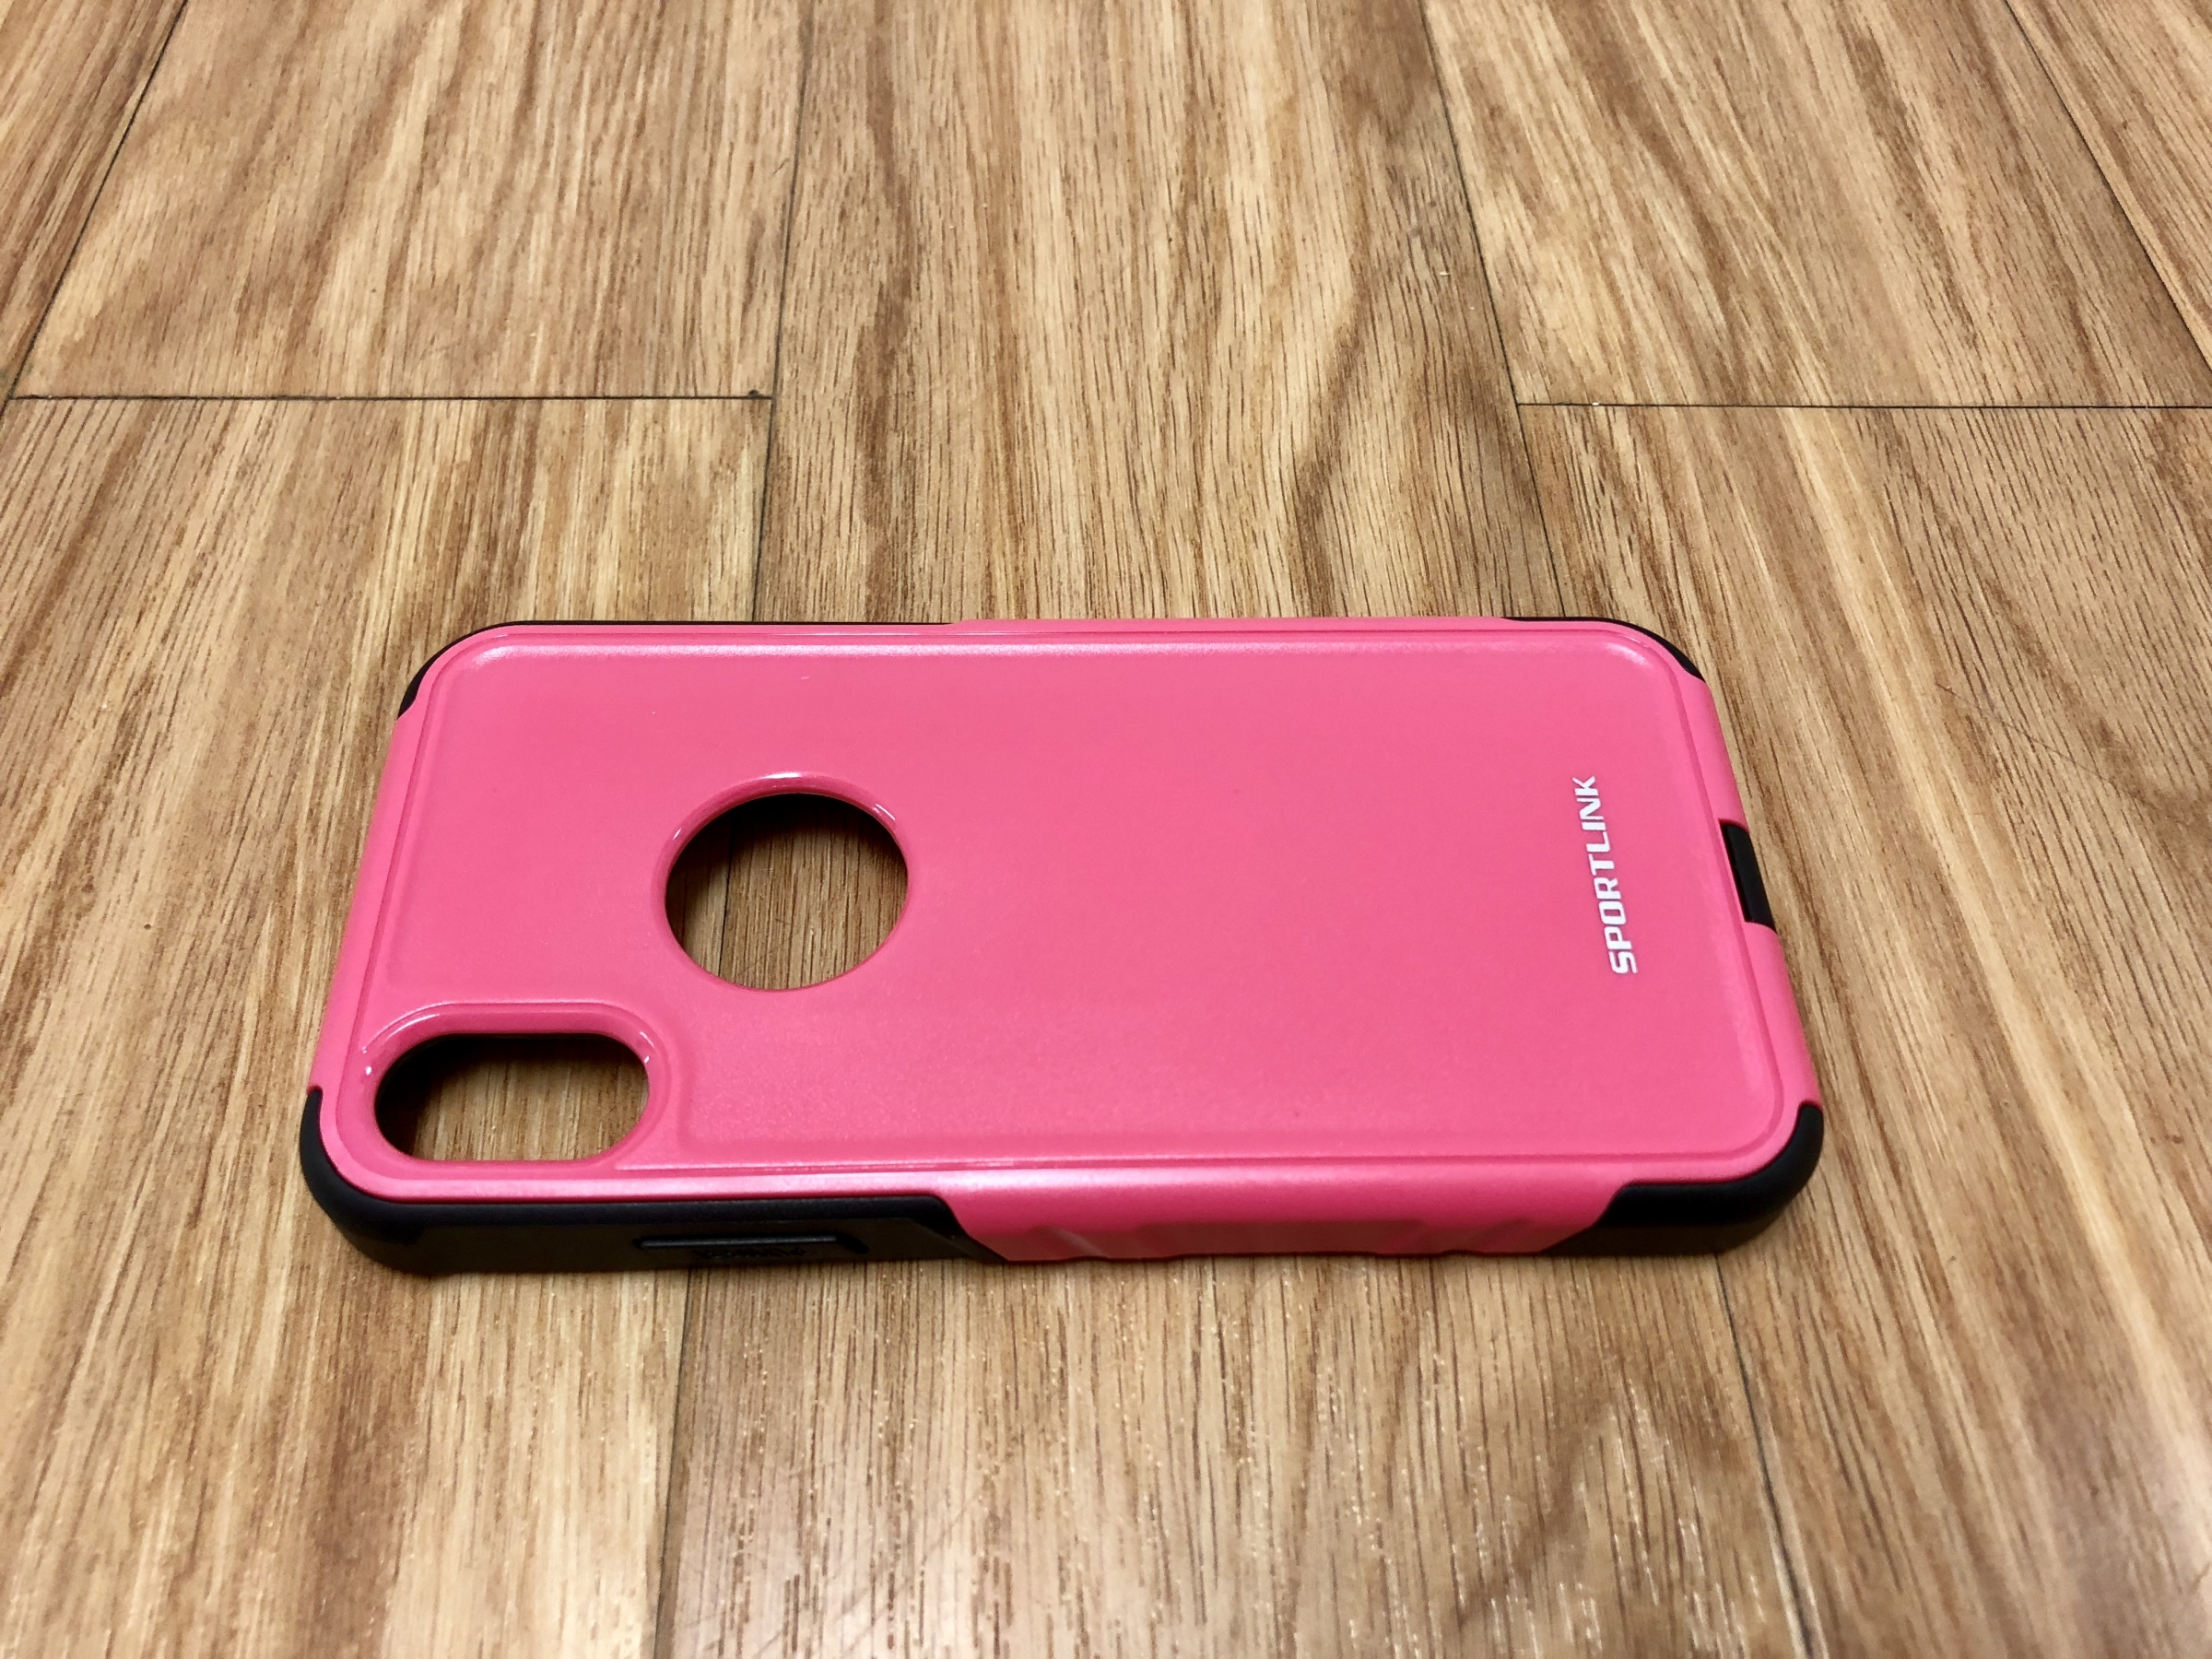 Durable Case, Vibrant Color!